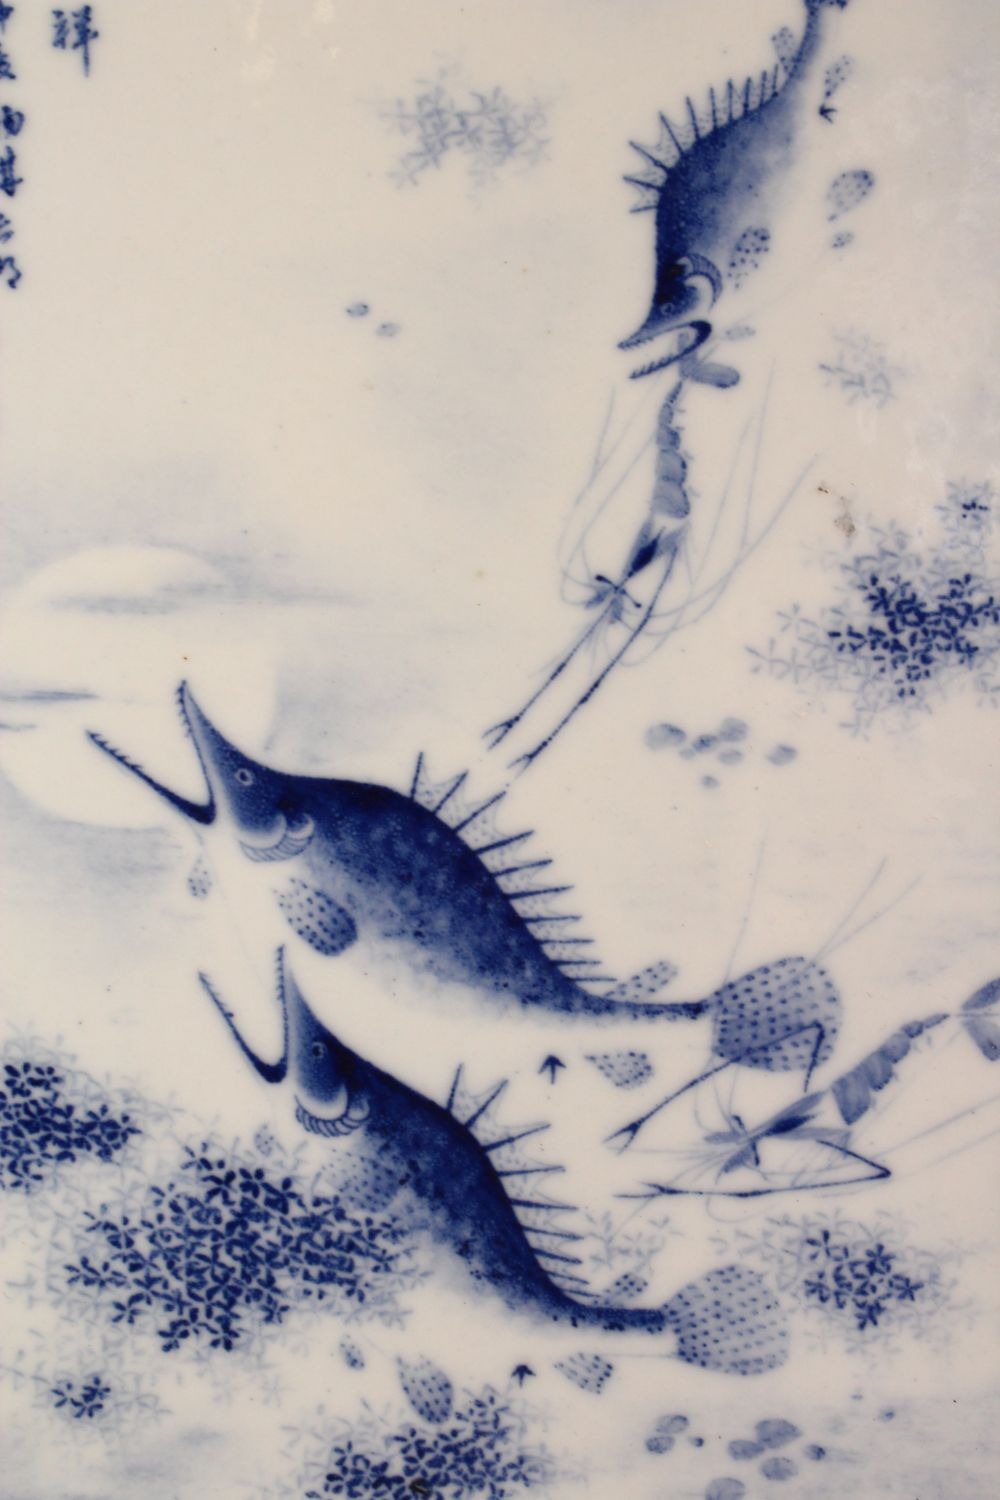 A CHINESE REPUBLIC STYLE BLUE & WHITE FISH PANEL, decorated with fish, crayfish and reed, upper left - Image 2 of 4